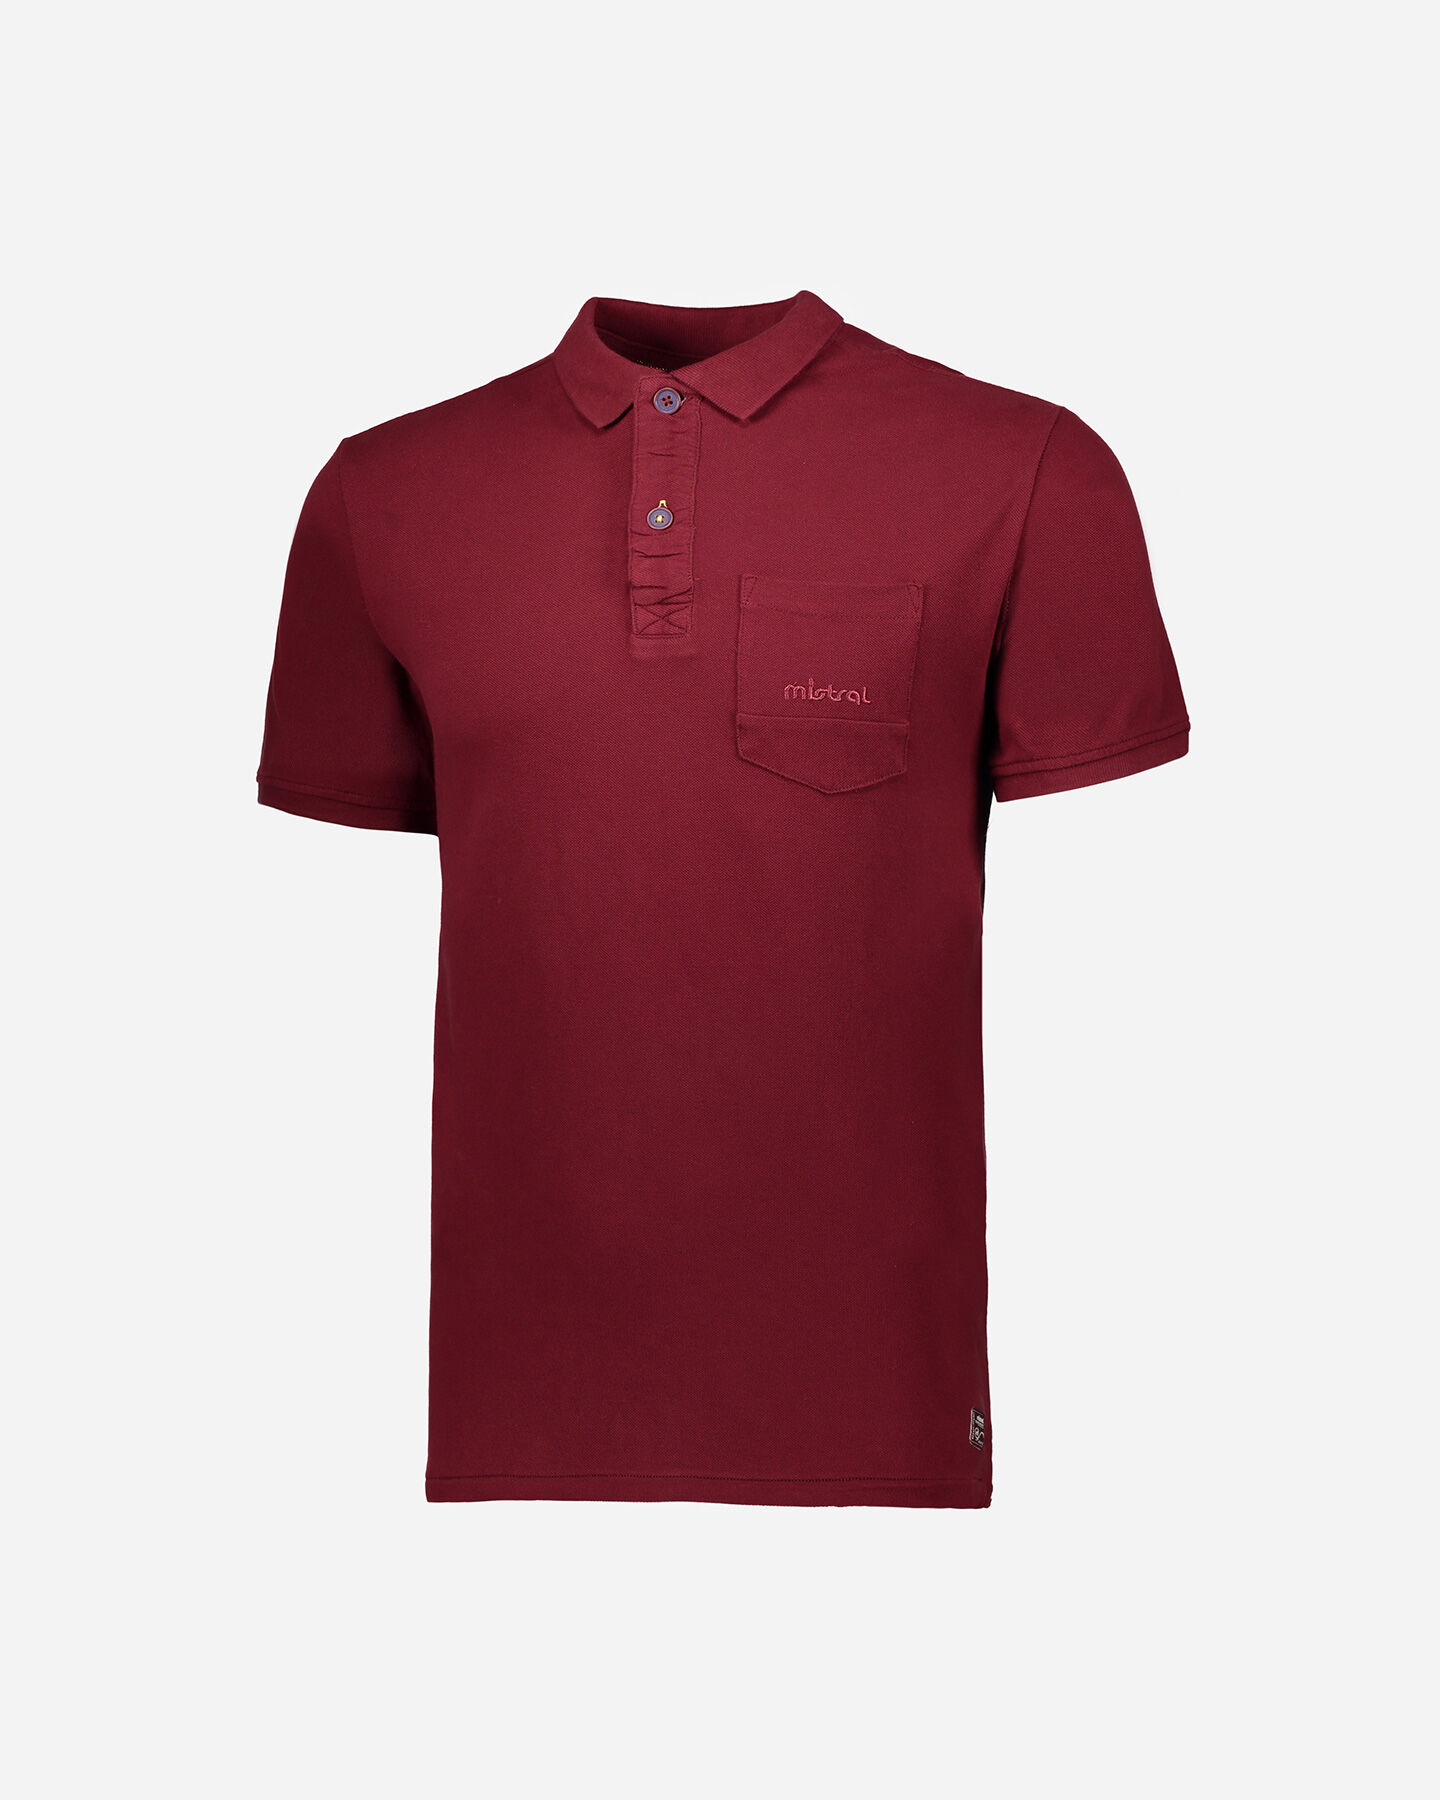 Polo MISTRAL BASIC M S4059968 scatto 5